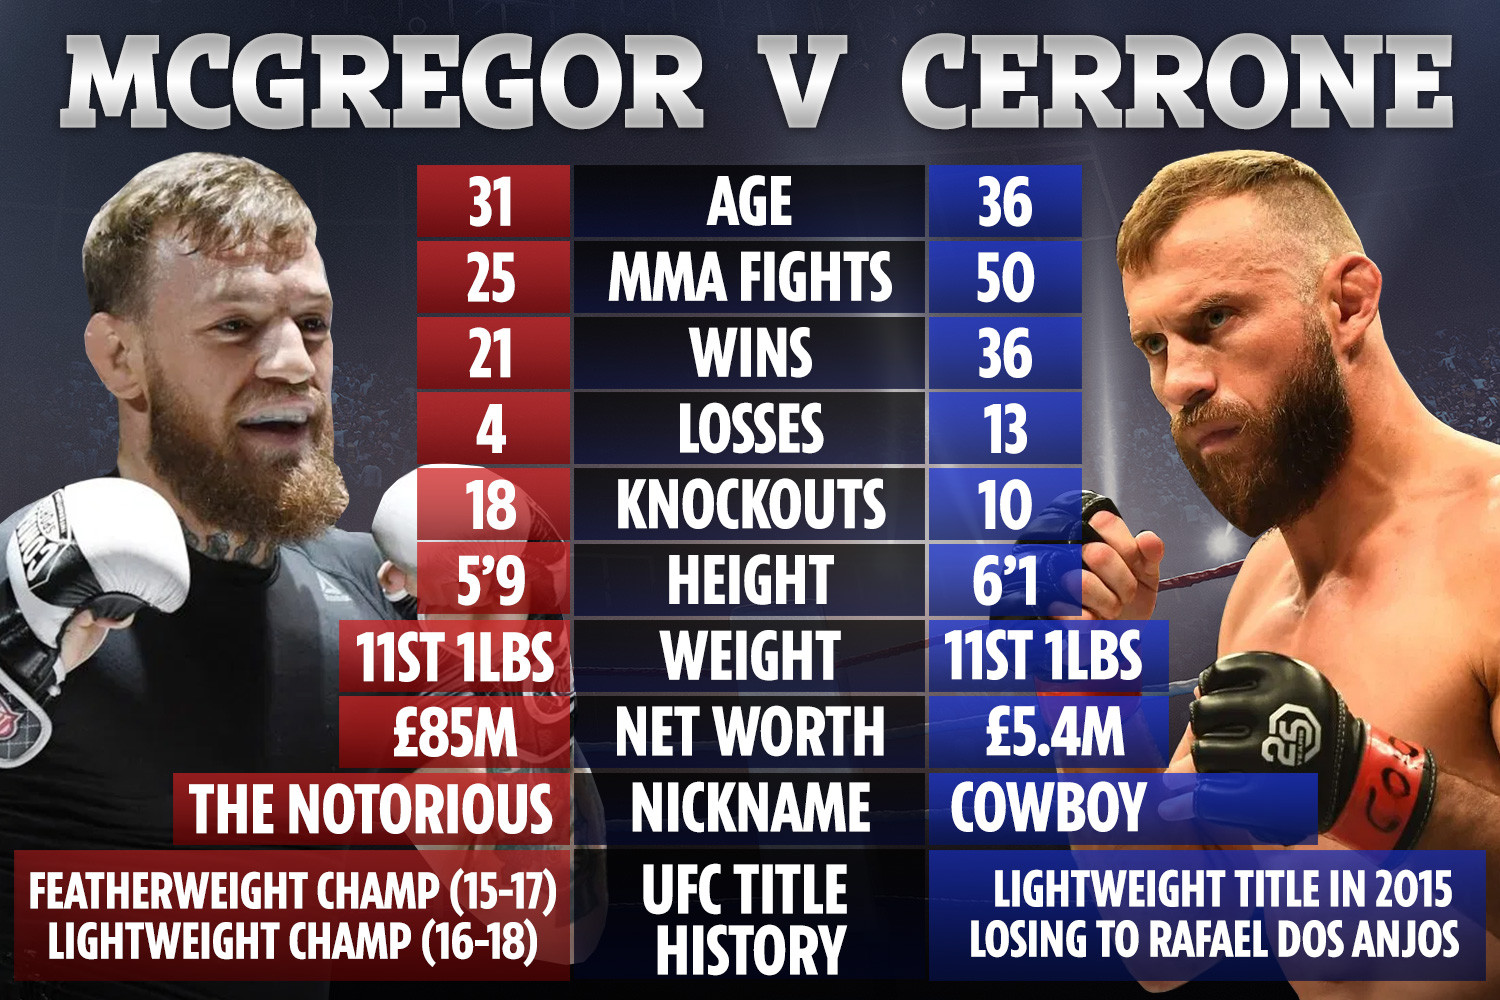 McGregor vs Cerrone